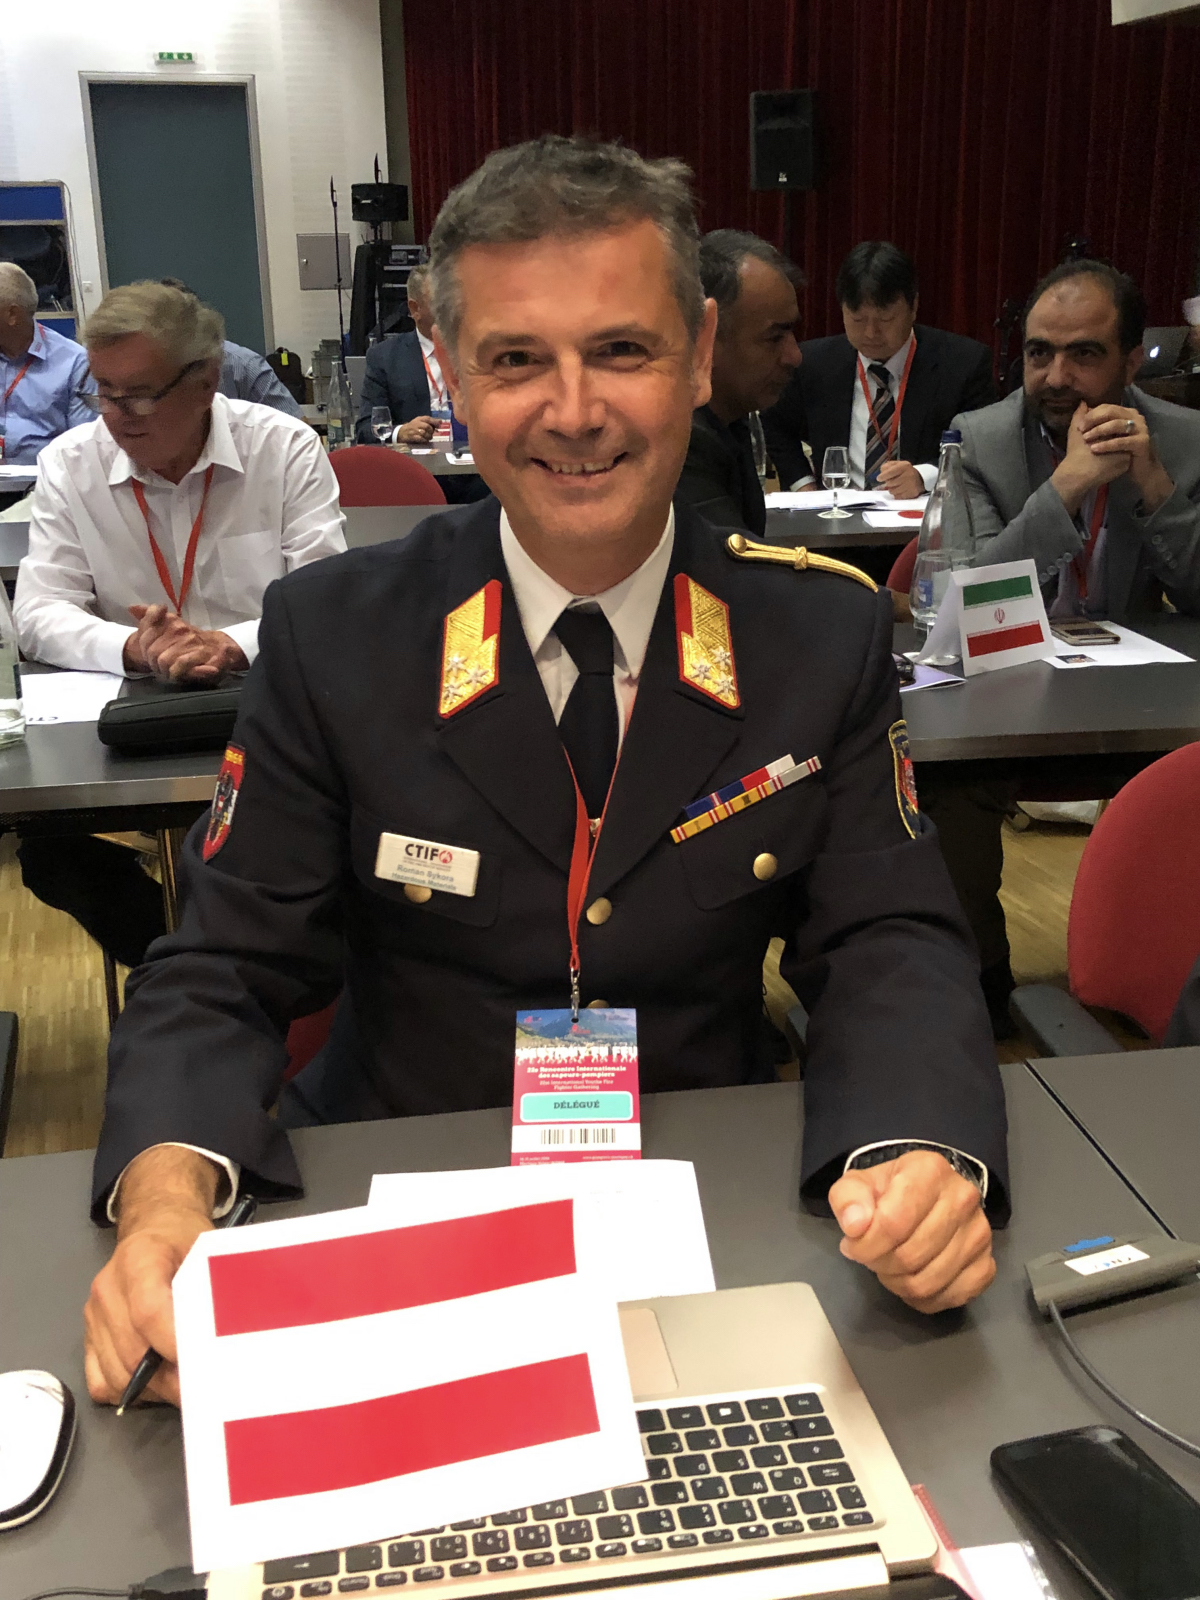 Roman Sykora at the CTIF Delegates Assembly, 2019, minutes after being elected new general secretary of the CTIF Executive Comittee.